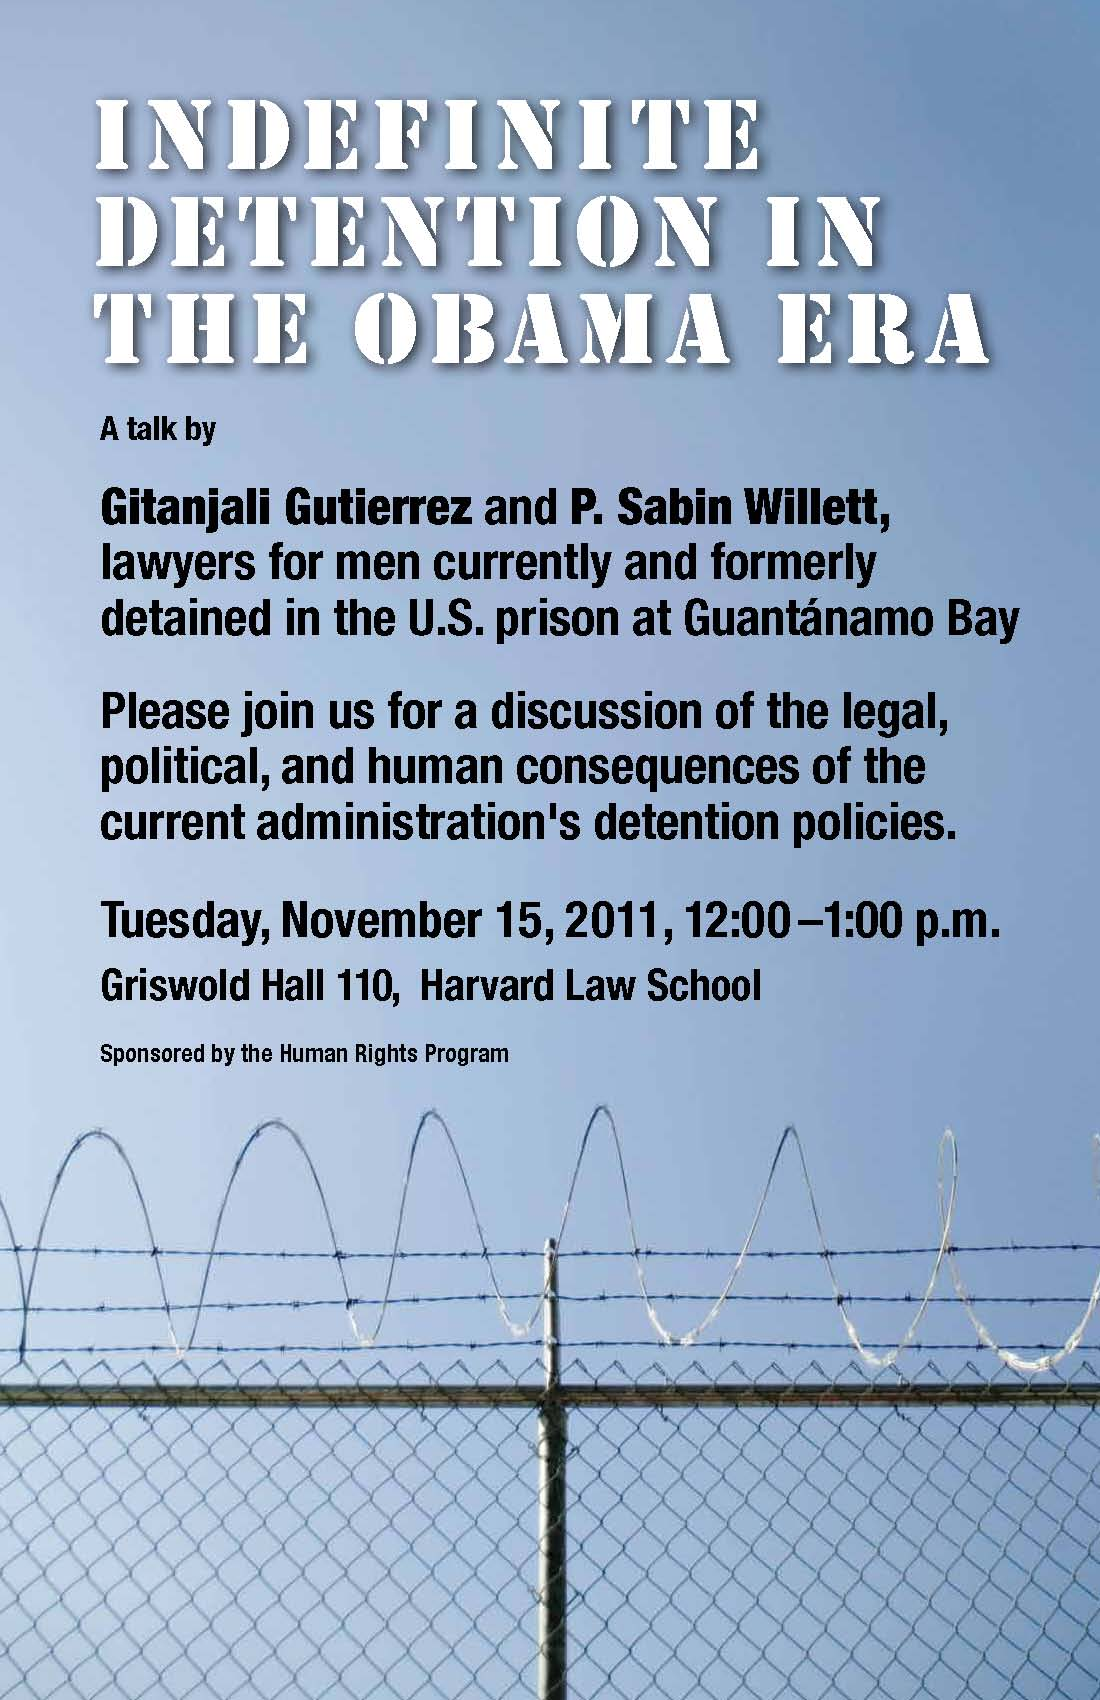 Event poster shows barbed wire and blue sky, gesturing at the U.S. prison in Guantanamo Bay.